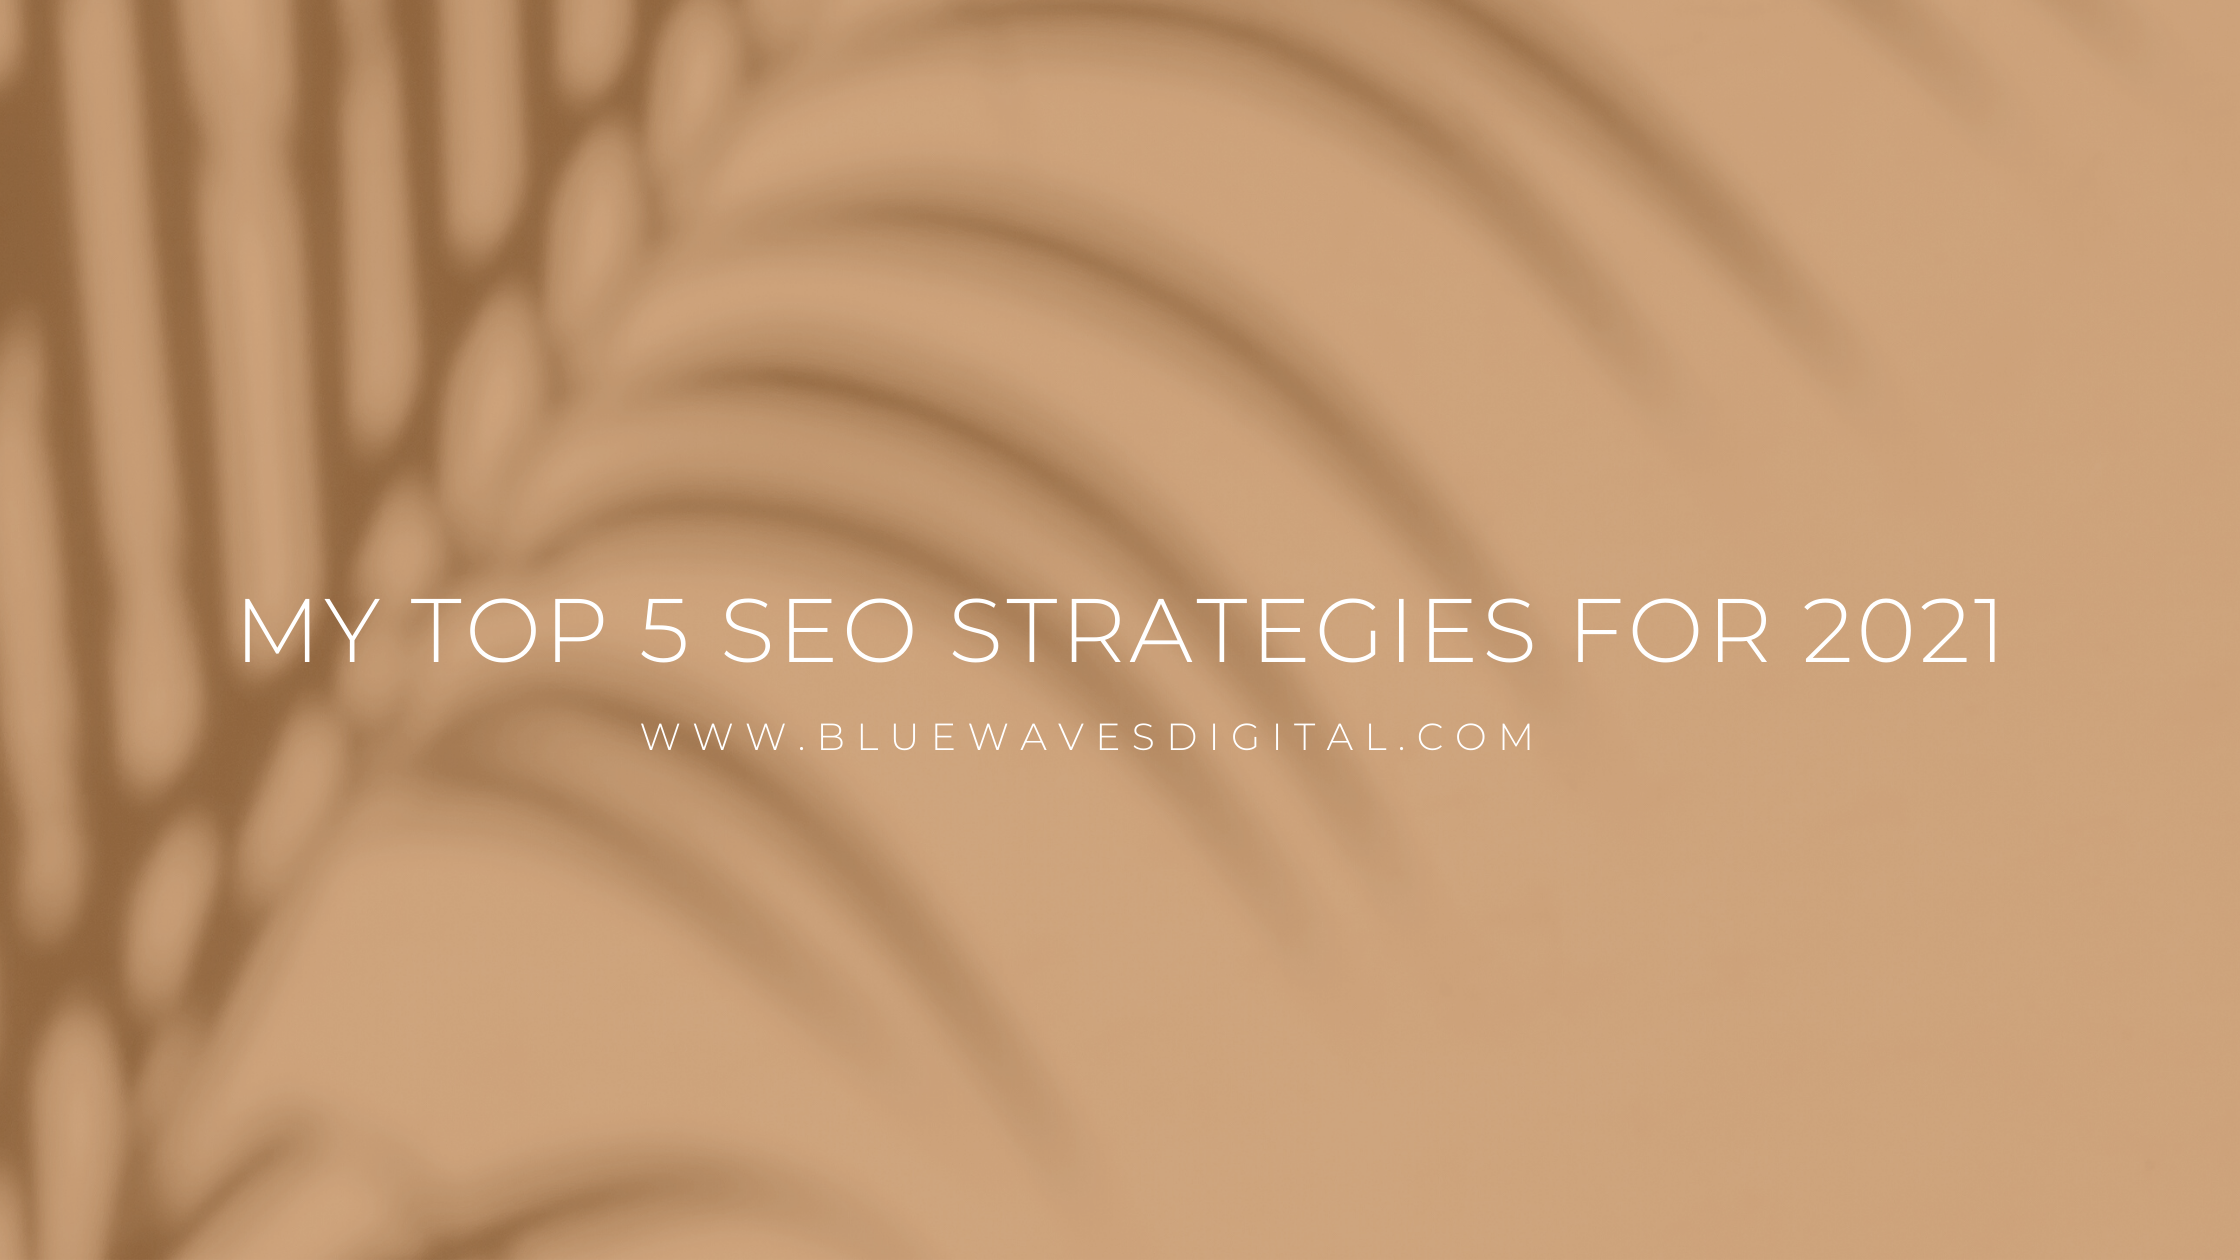 My Top 5 SEO Strategies For 2021